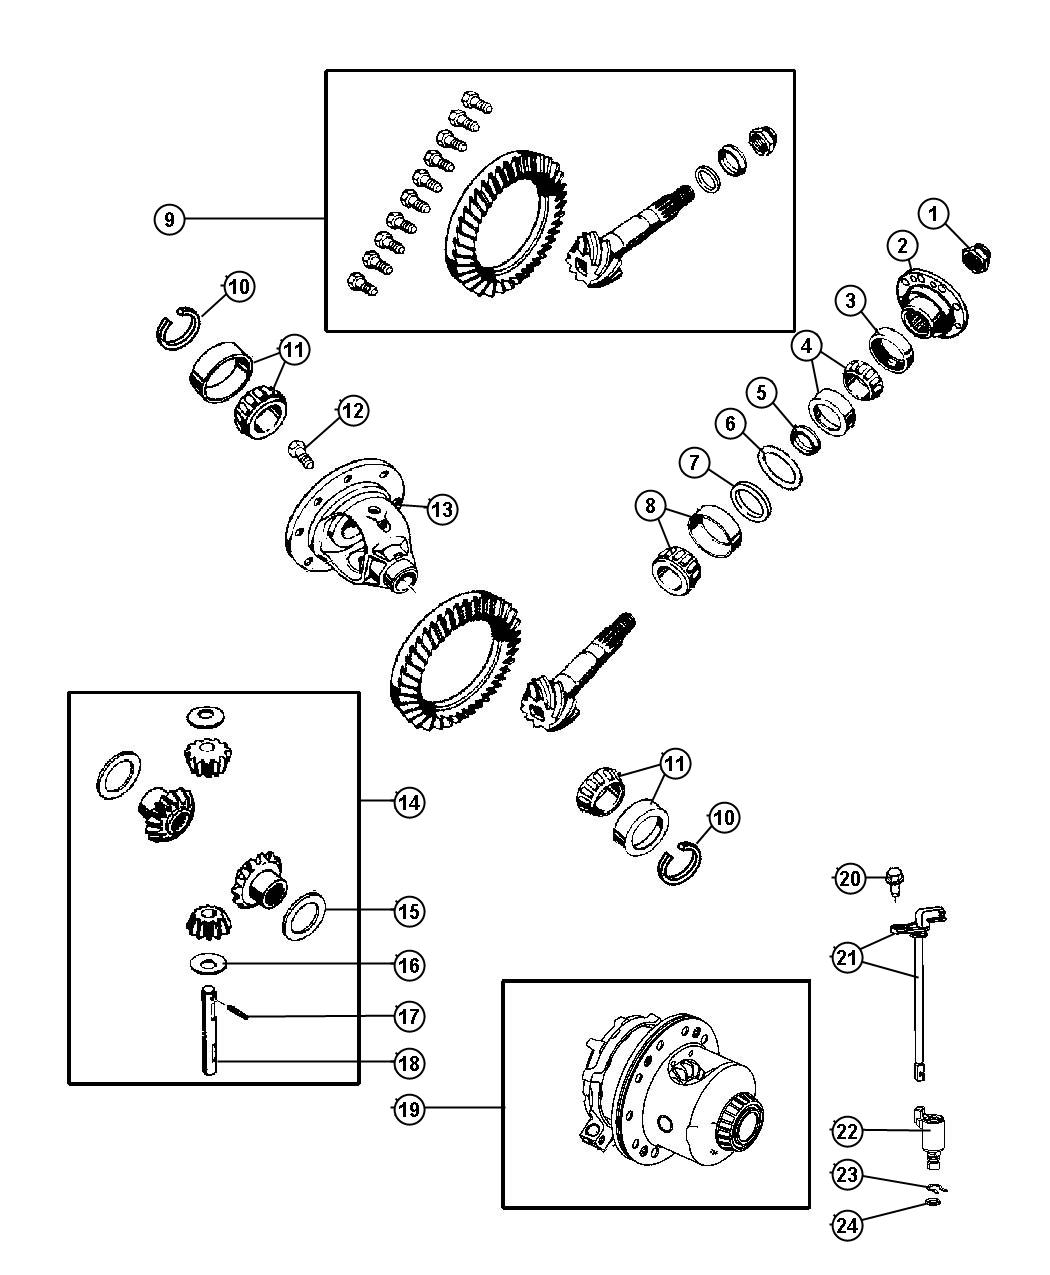 Jeep Commander Gear Kit Used For Ring And Pinion